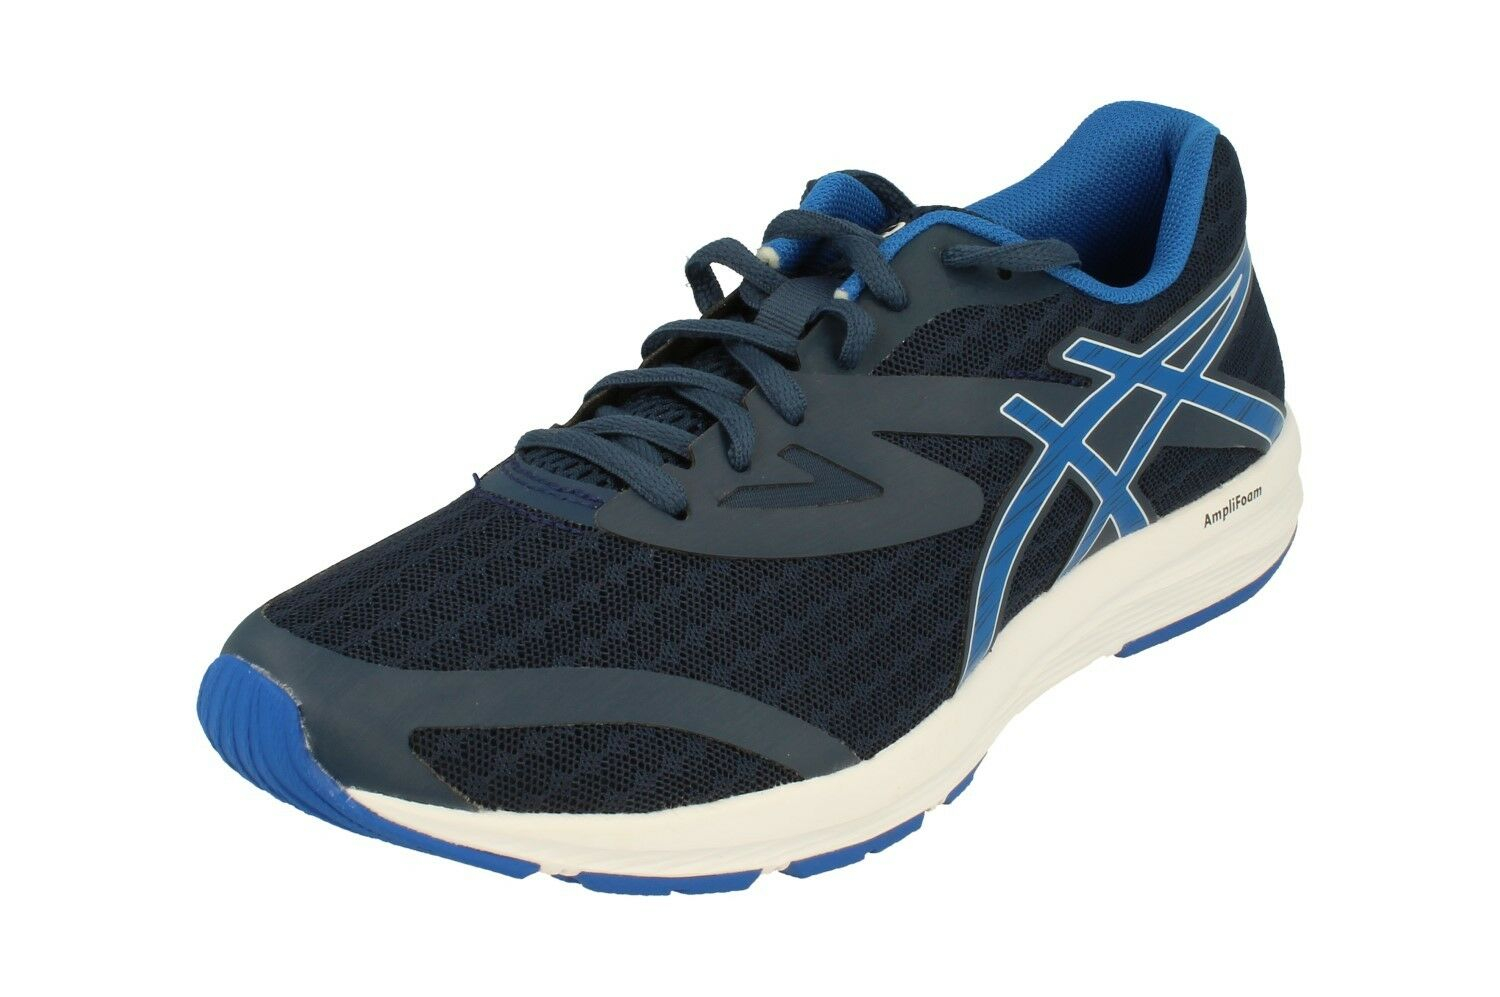 Asics Amplica Mens Running Trainers T825N Sneakers shoes 4945